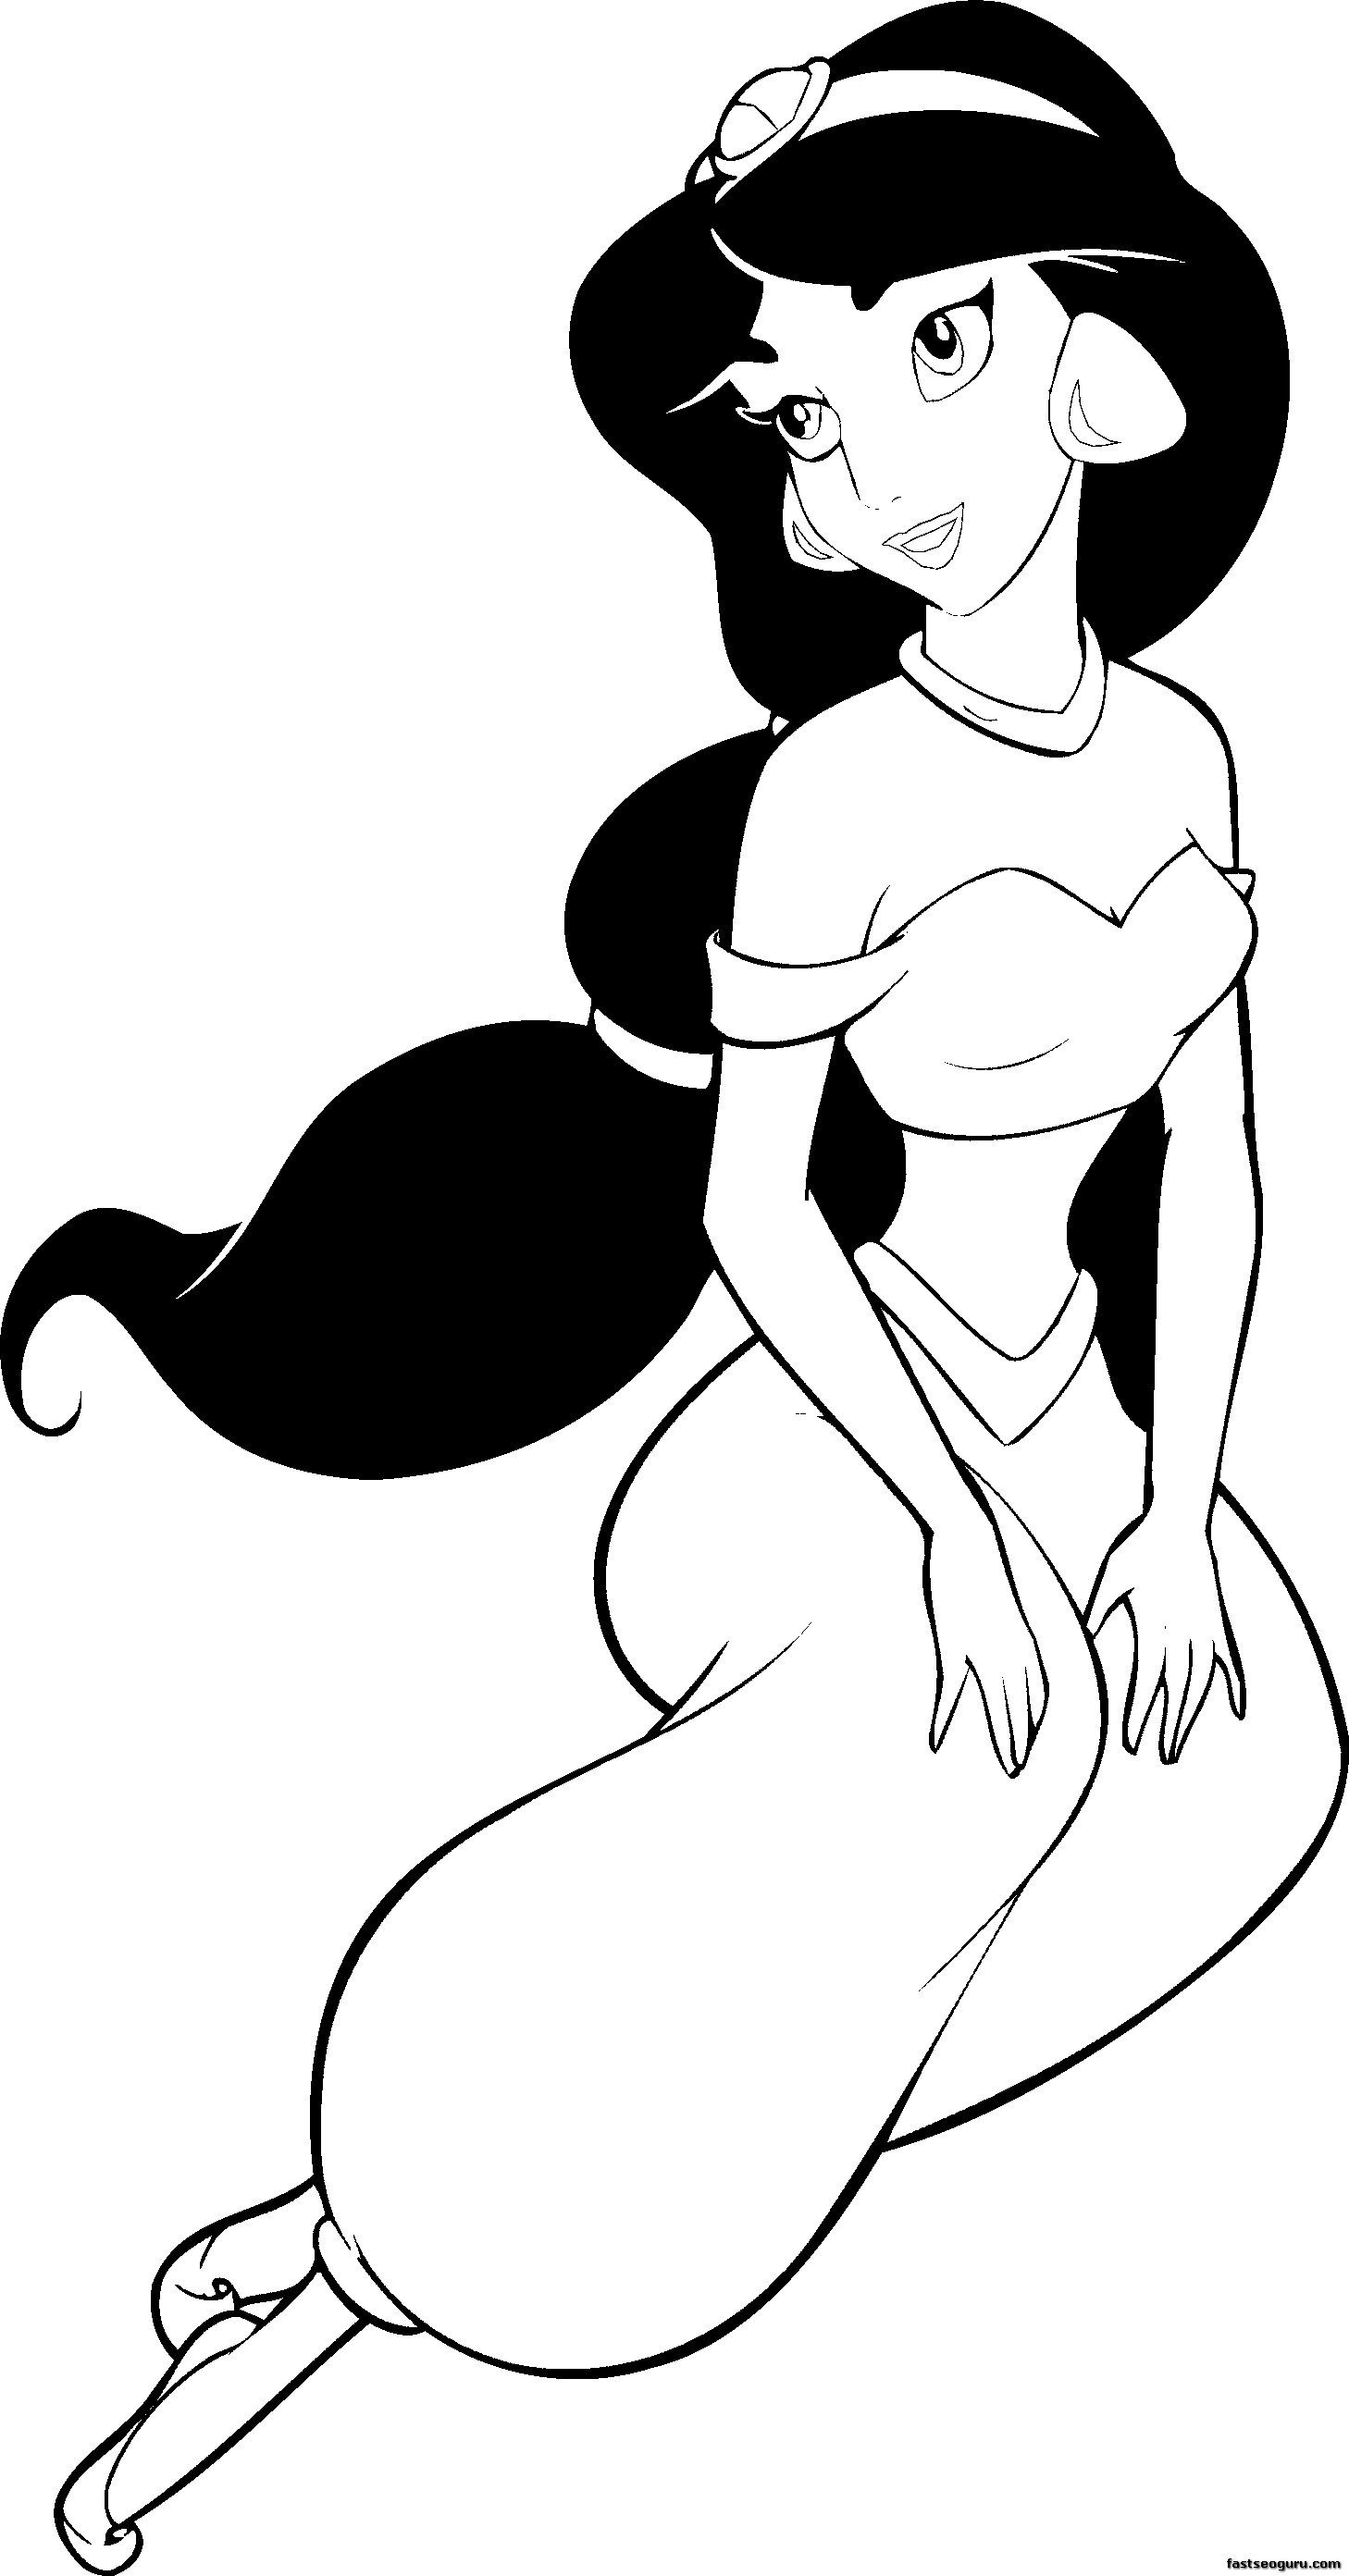 Disney princess Archives - Coloring pages - timeless-miracle.com